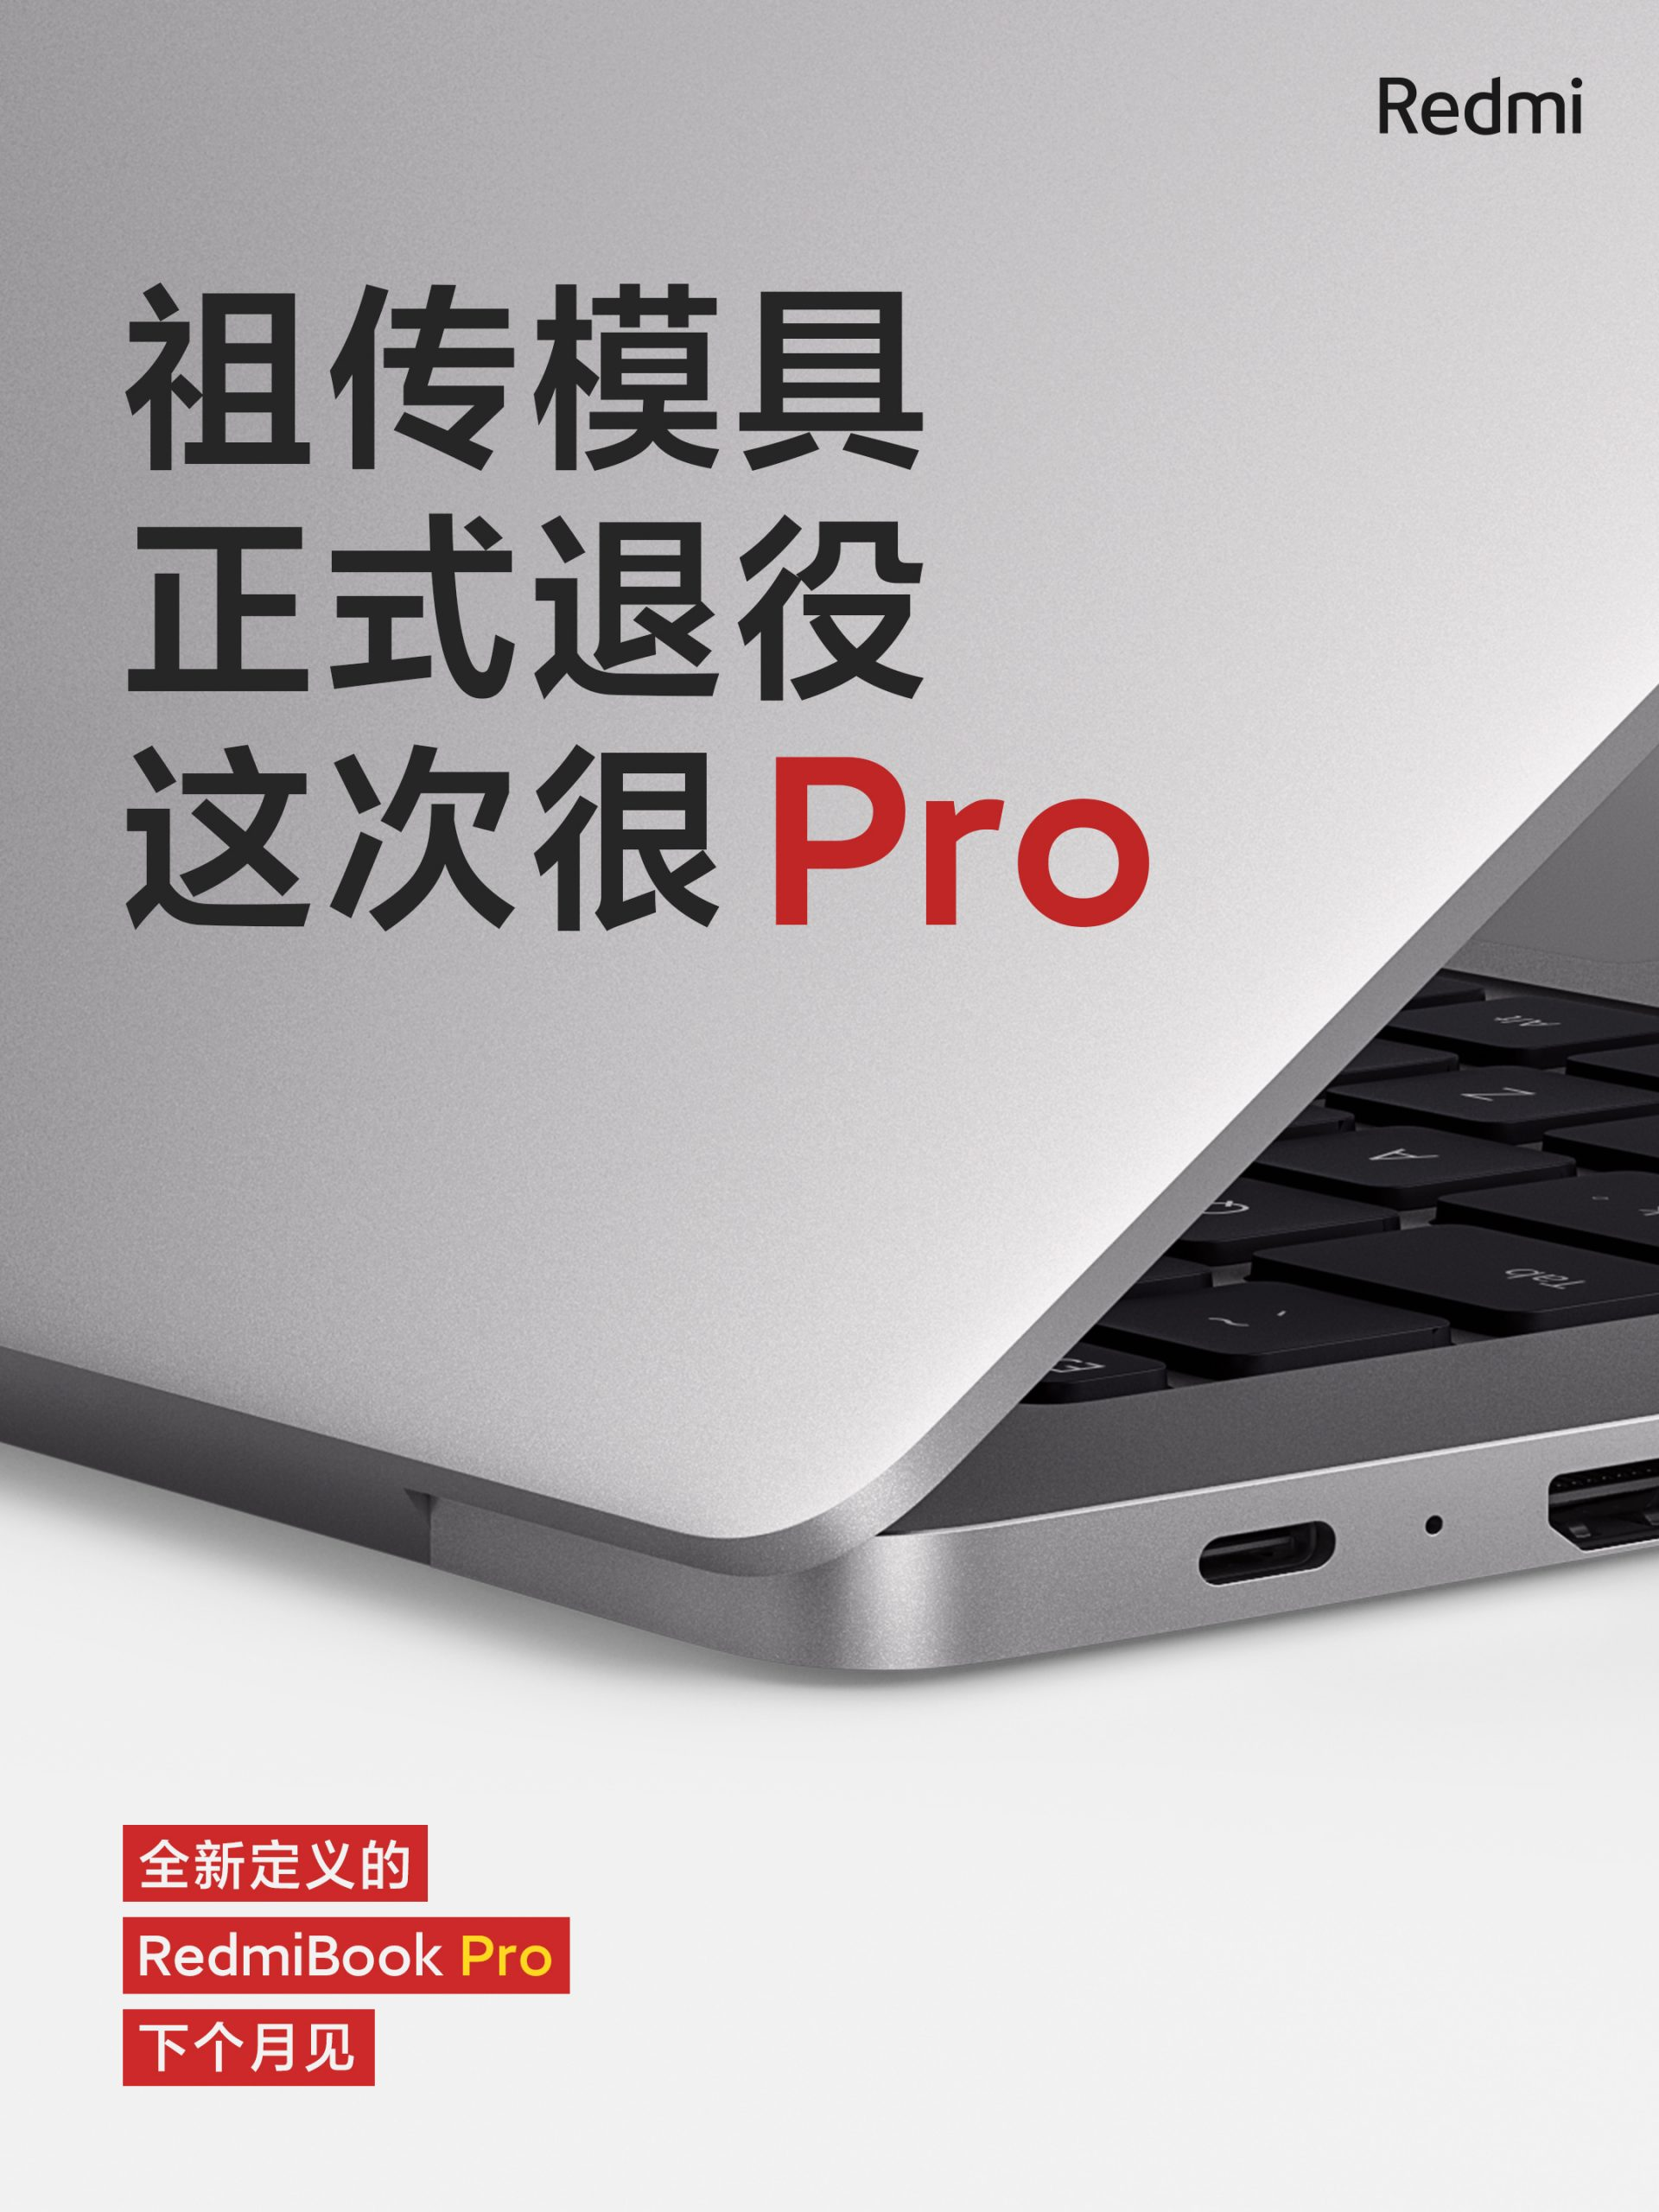 Xiaomi shows us its new RedmiBook Pro and its great resemblance to Apple s MacBook